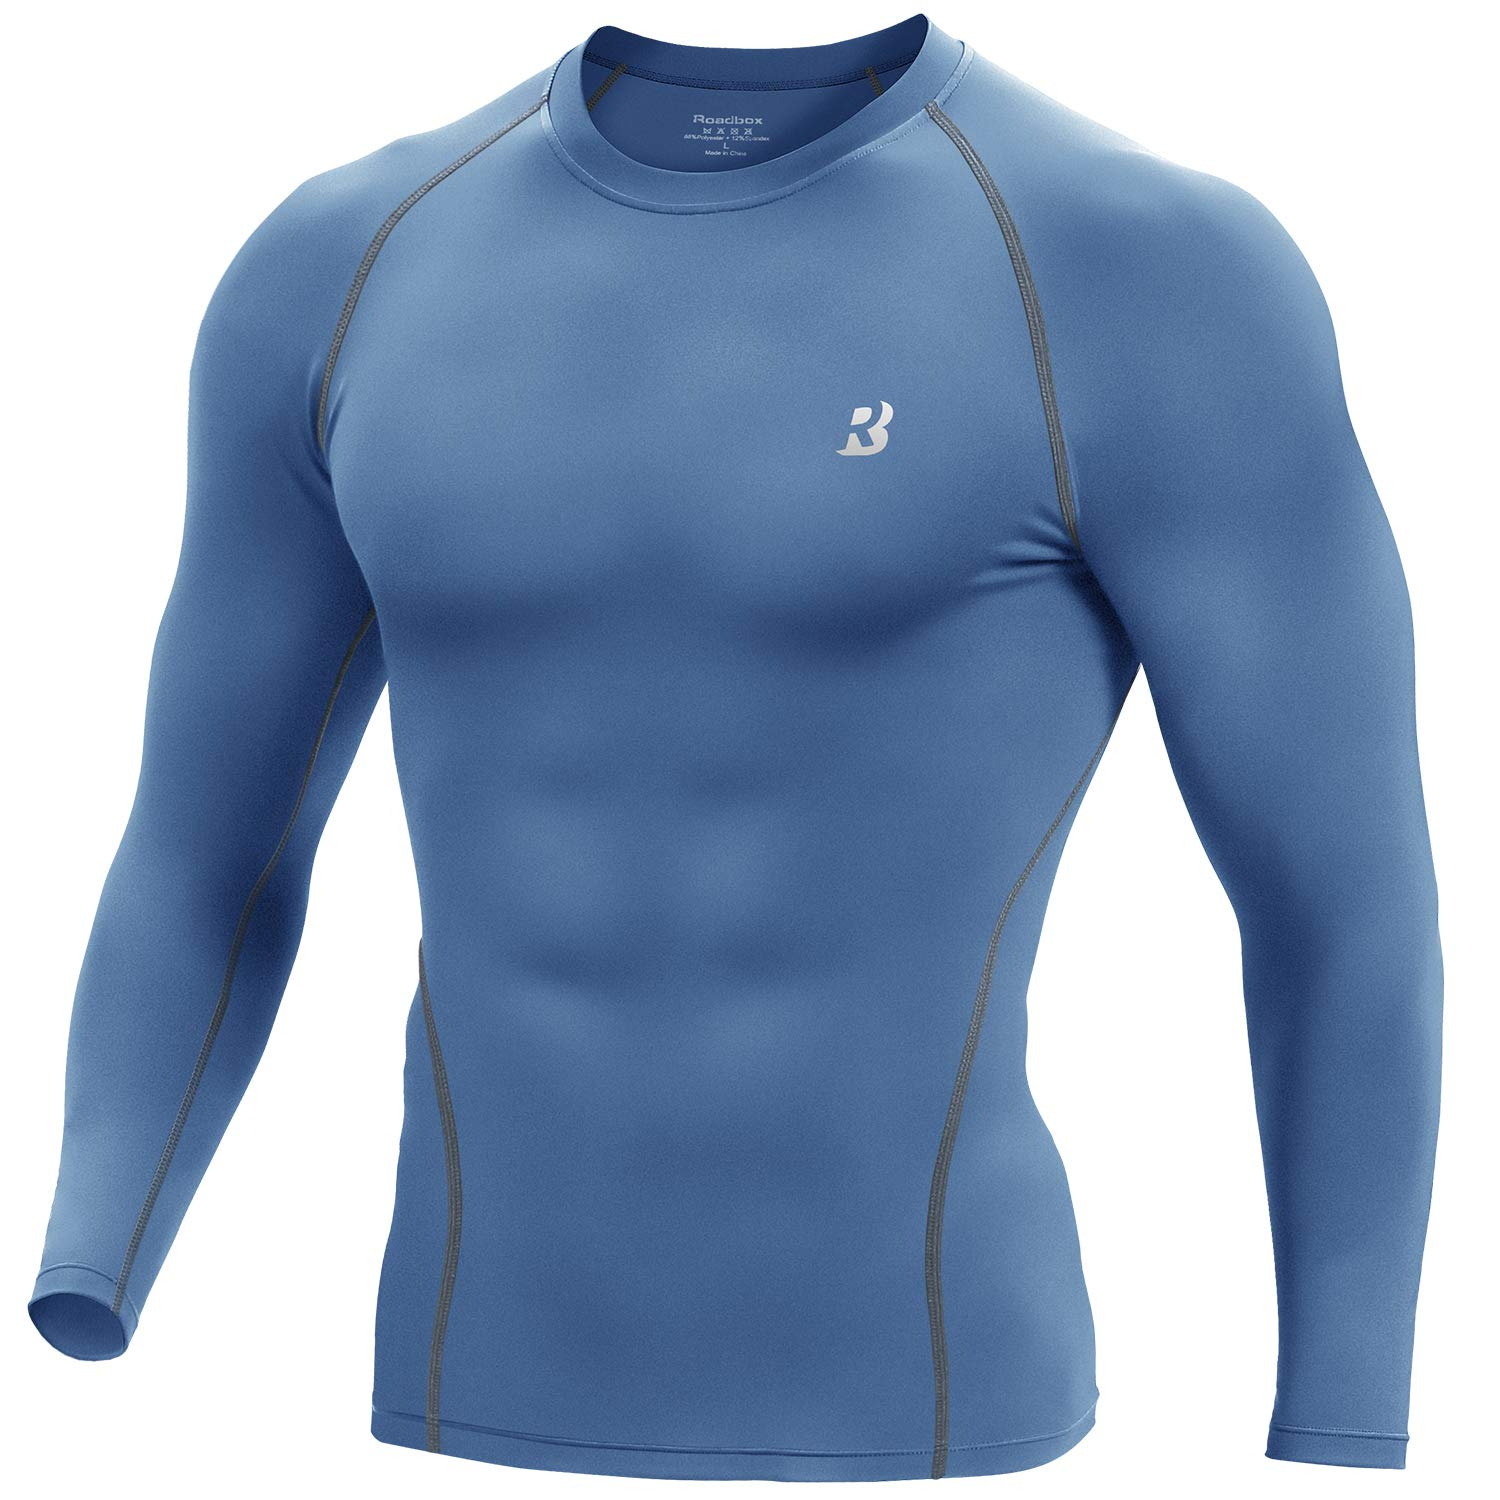 Roadbox Men's Long Sleeve Compression Shirt - Cool Dry Athletic Baselayer Workout T-Shirts